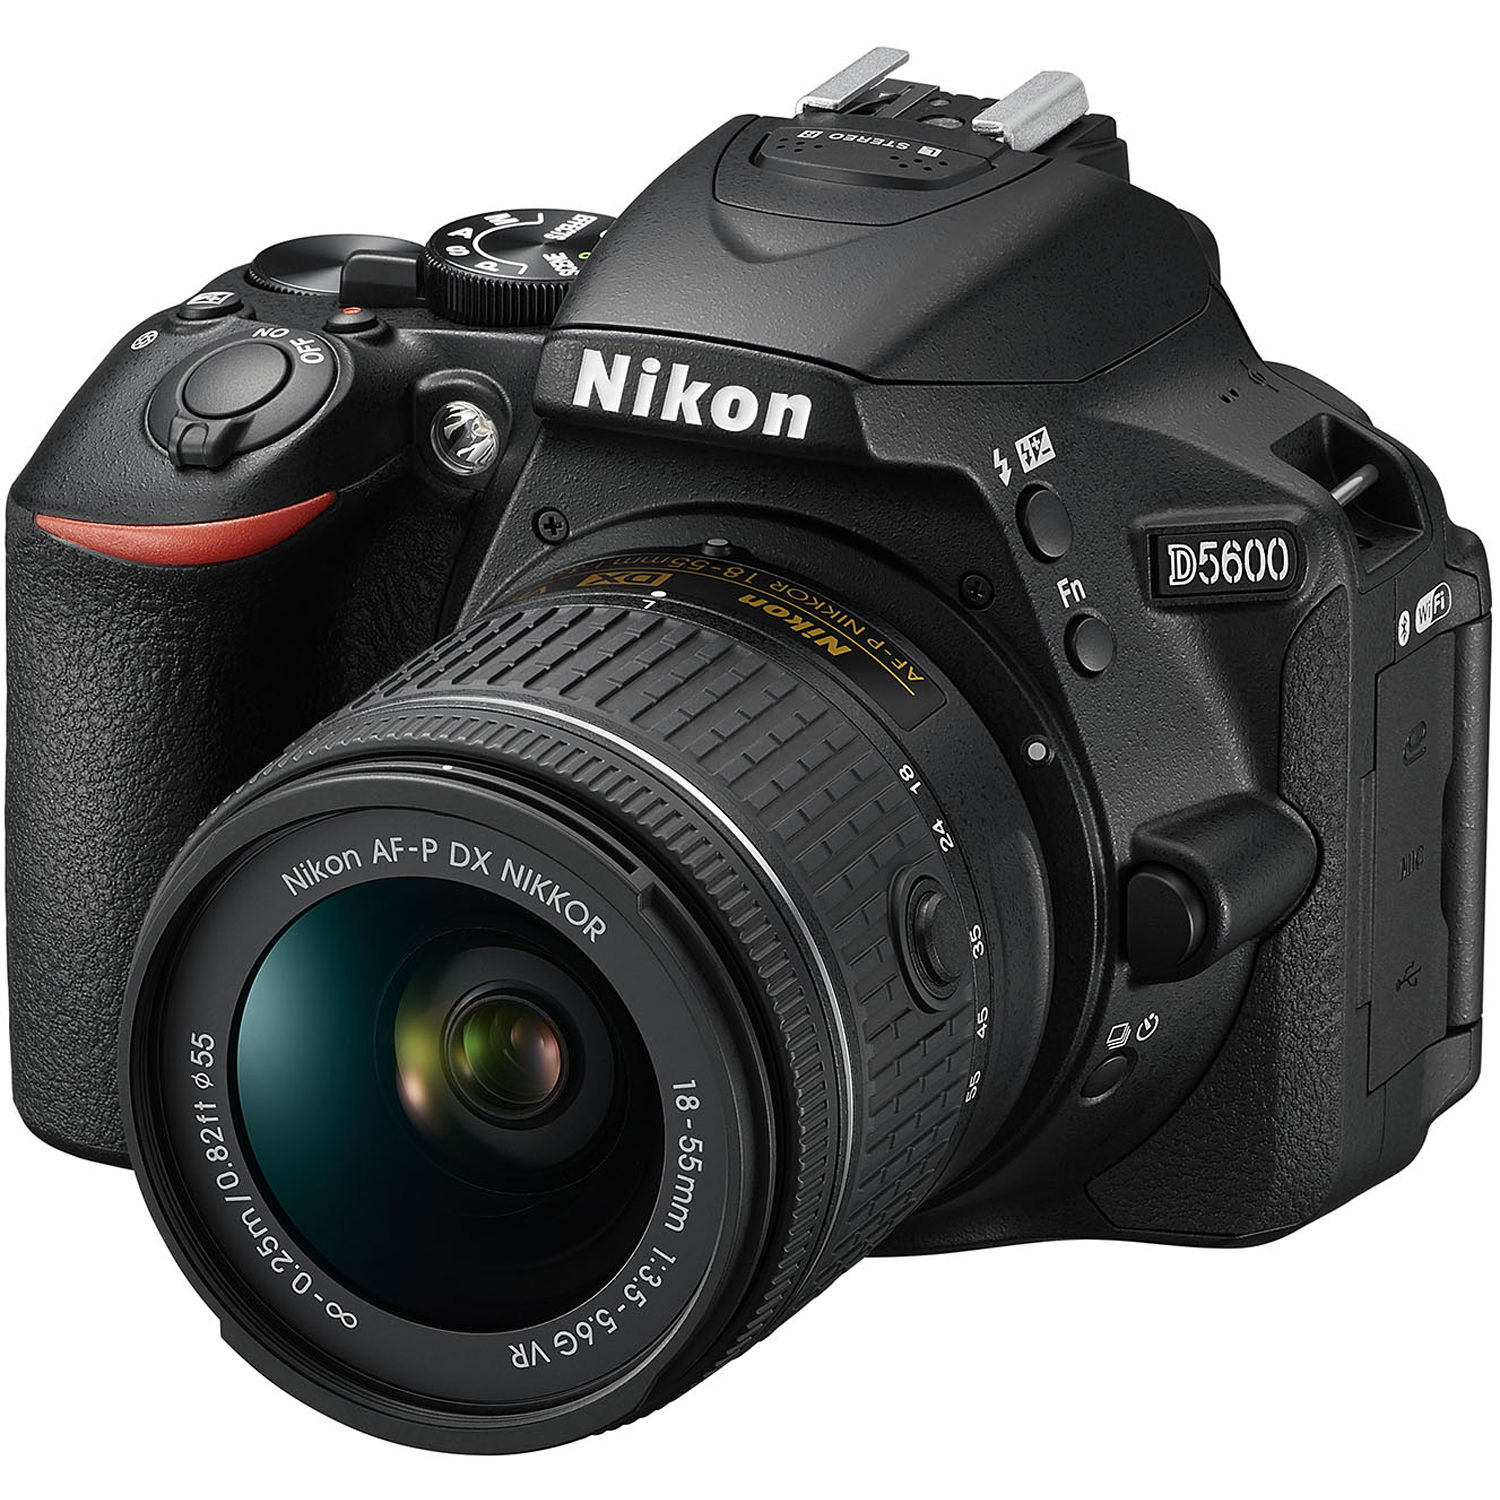 D5600 Digital SLR Camera with 18-55mm  70-300mm